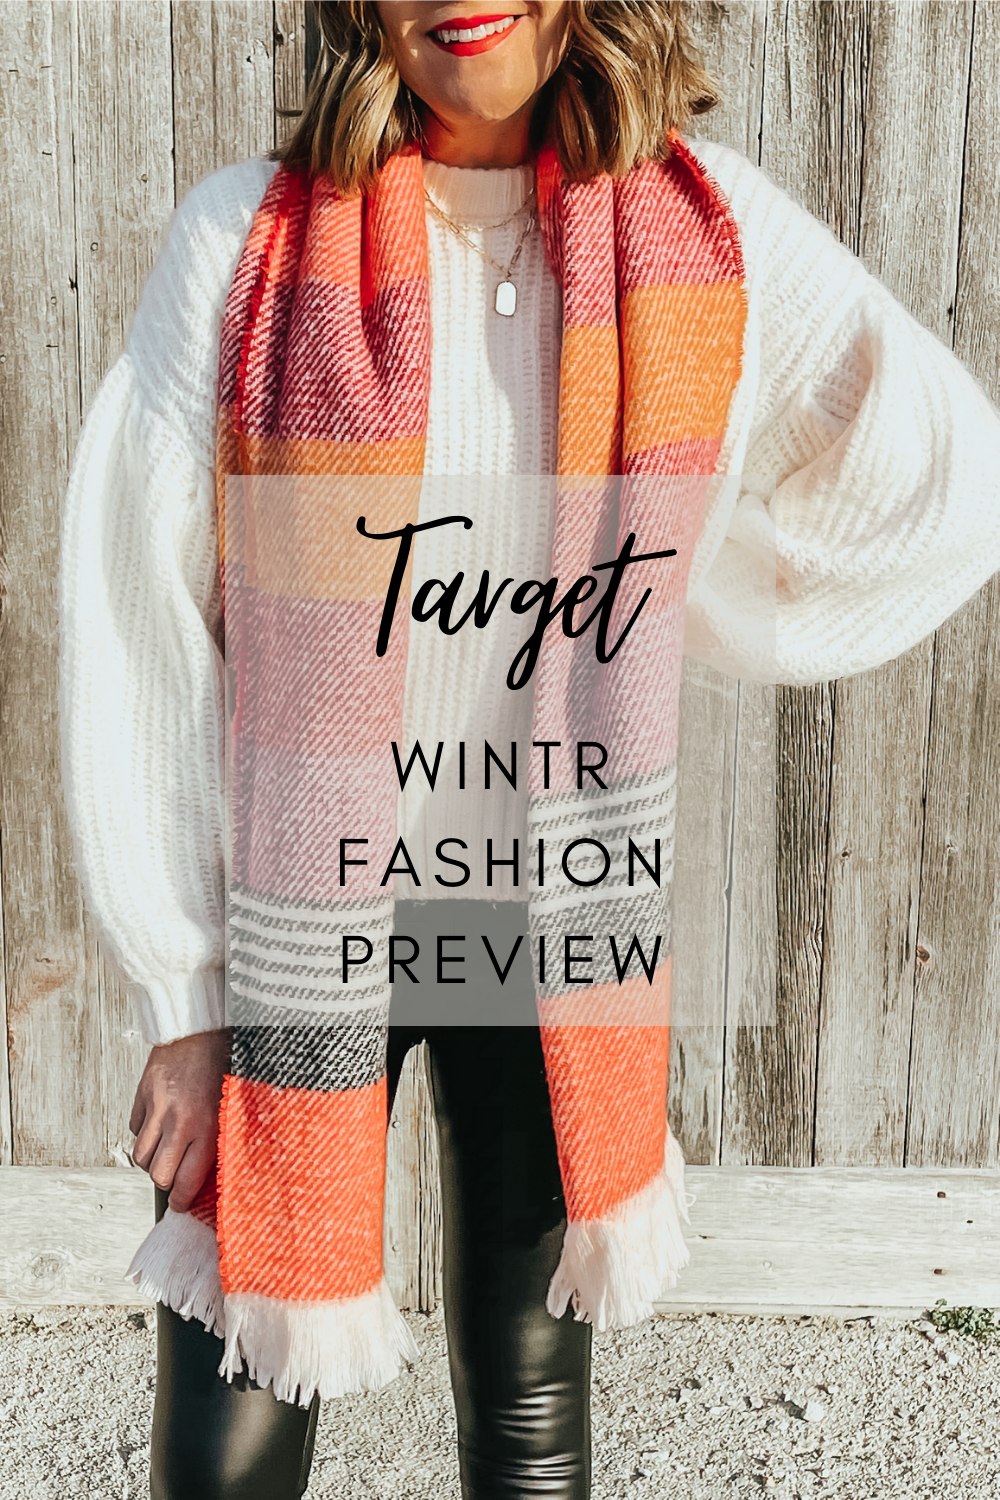 2020 TARGET WINTER FASHION PREVIEW